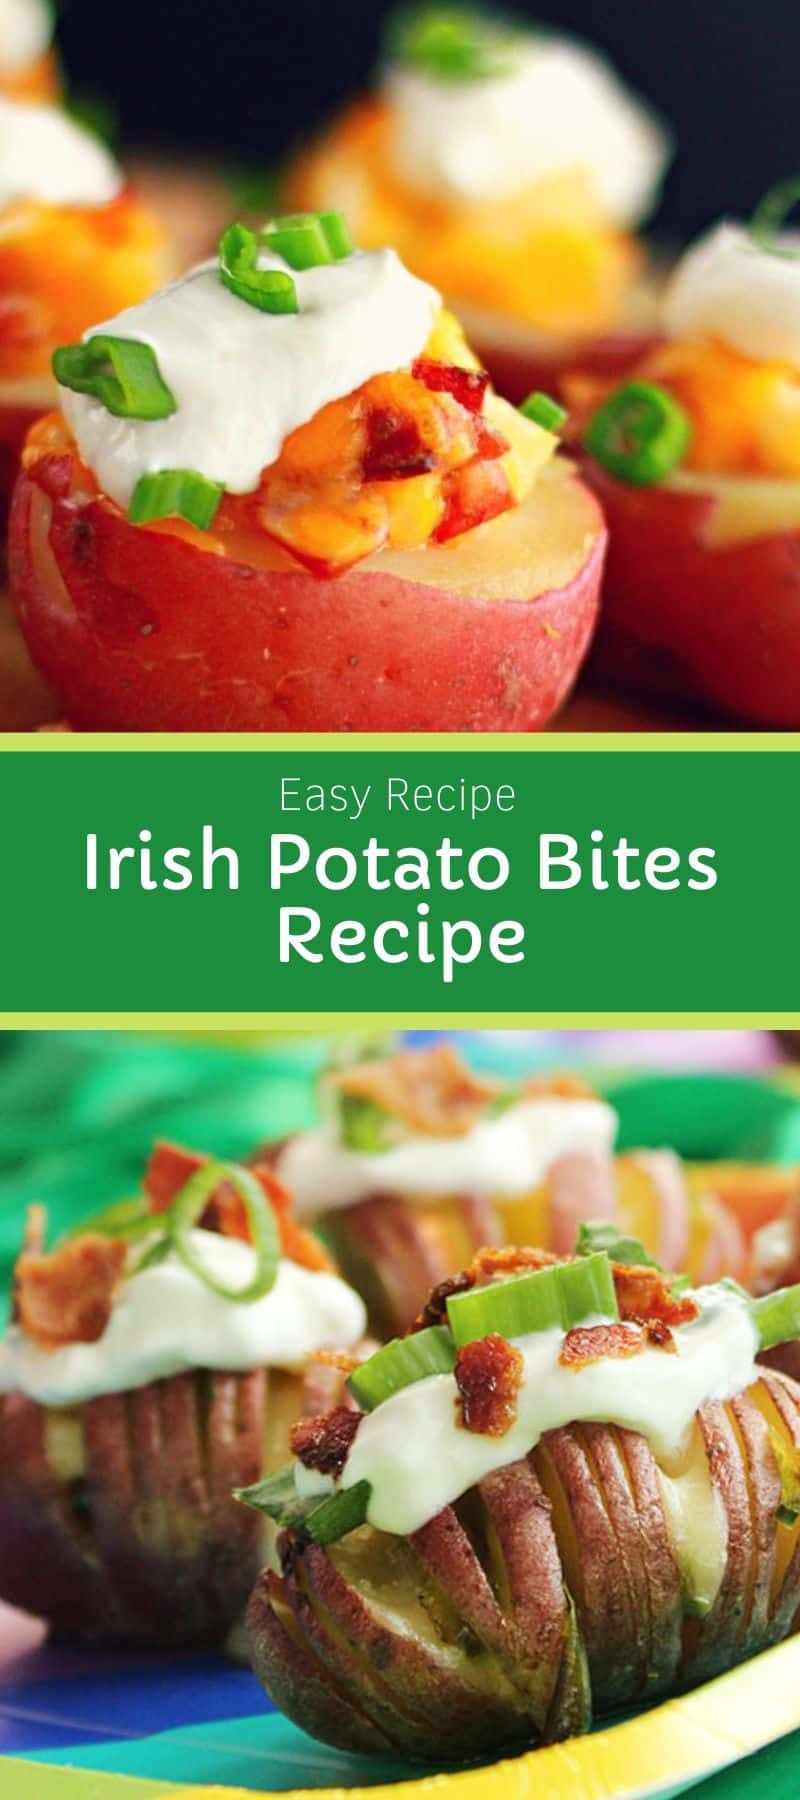 Irish Potato Bites Recipe 3